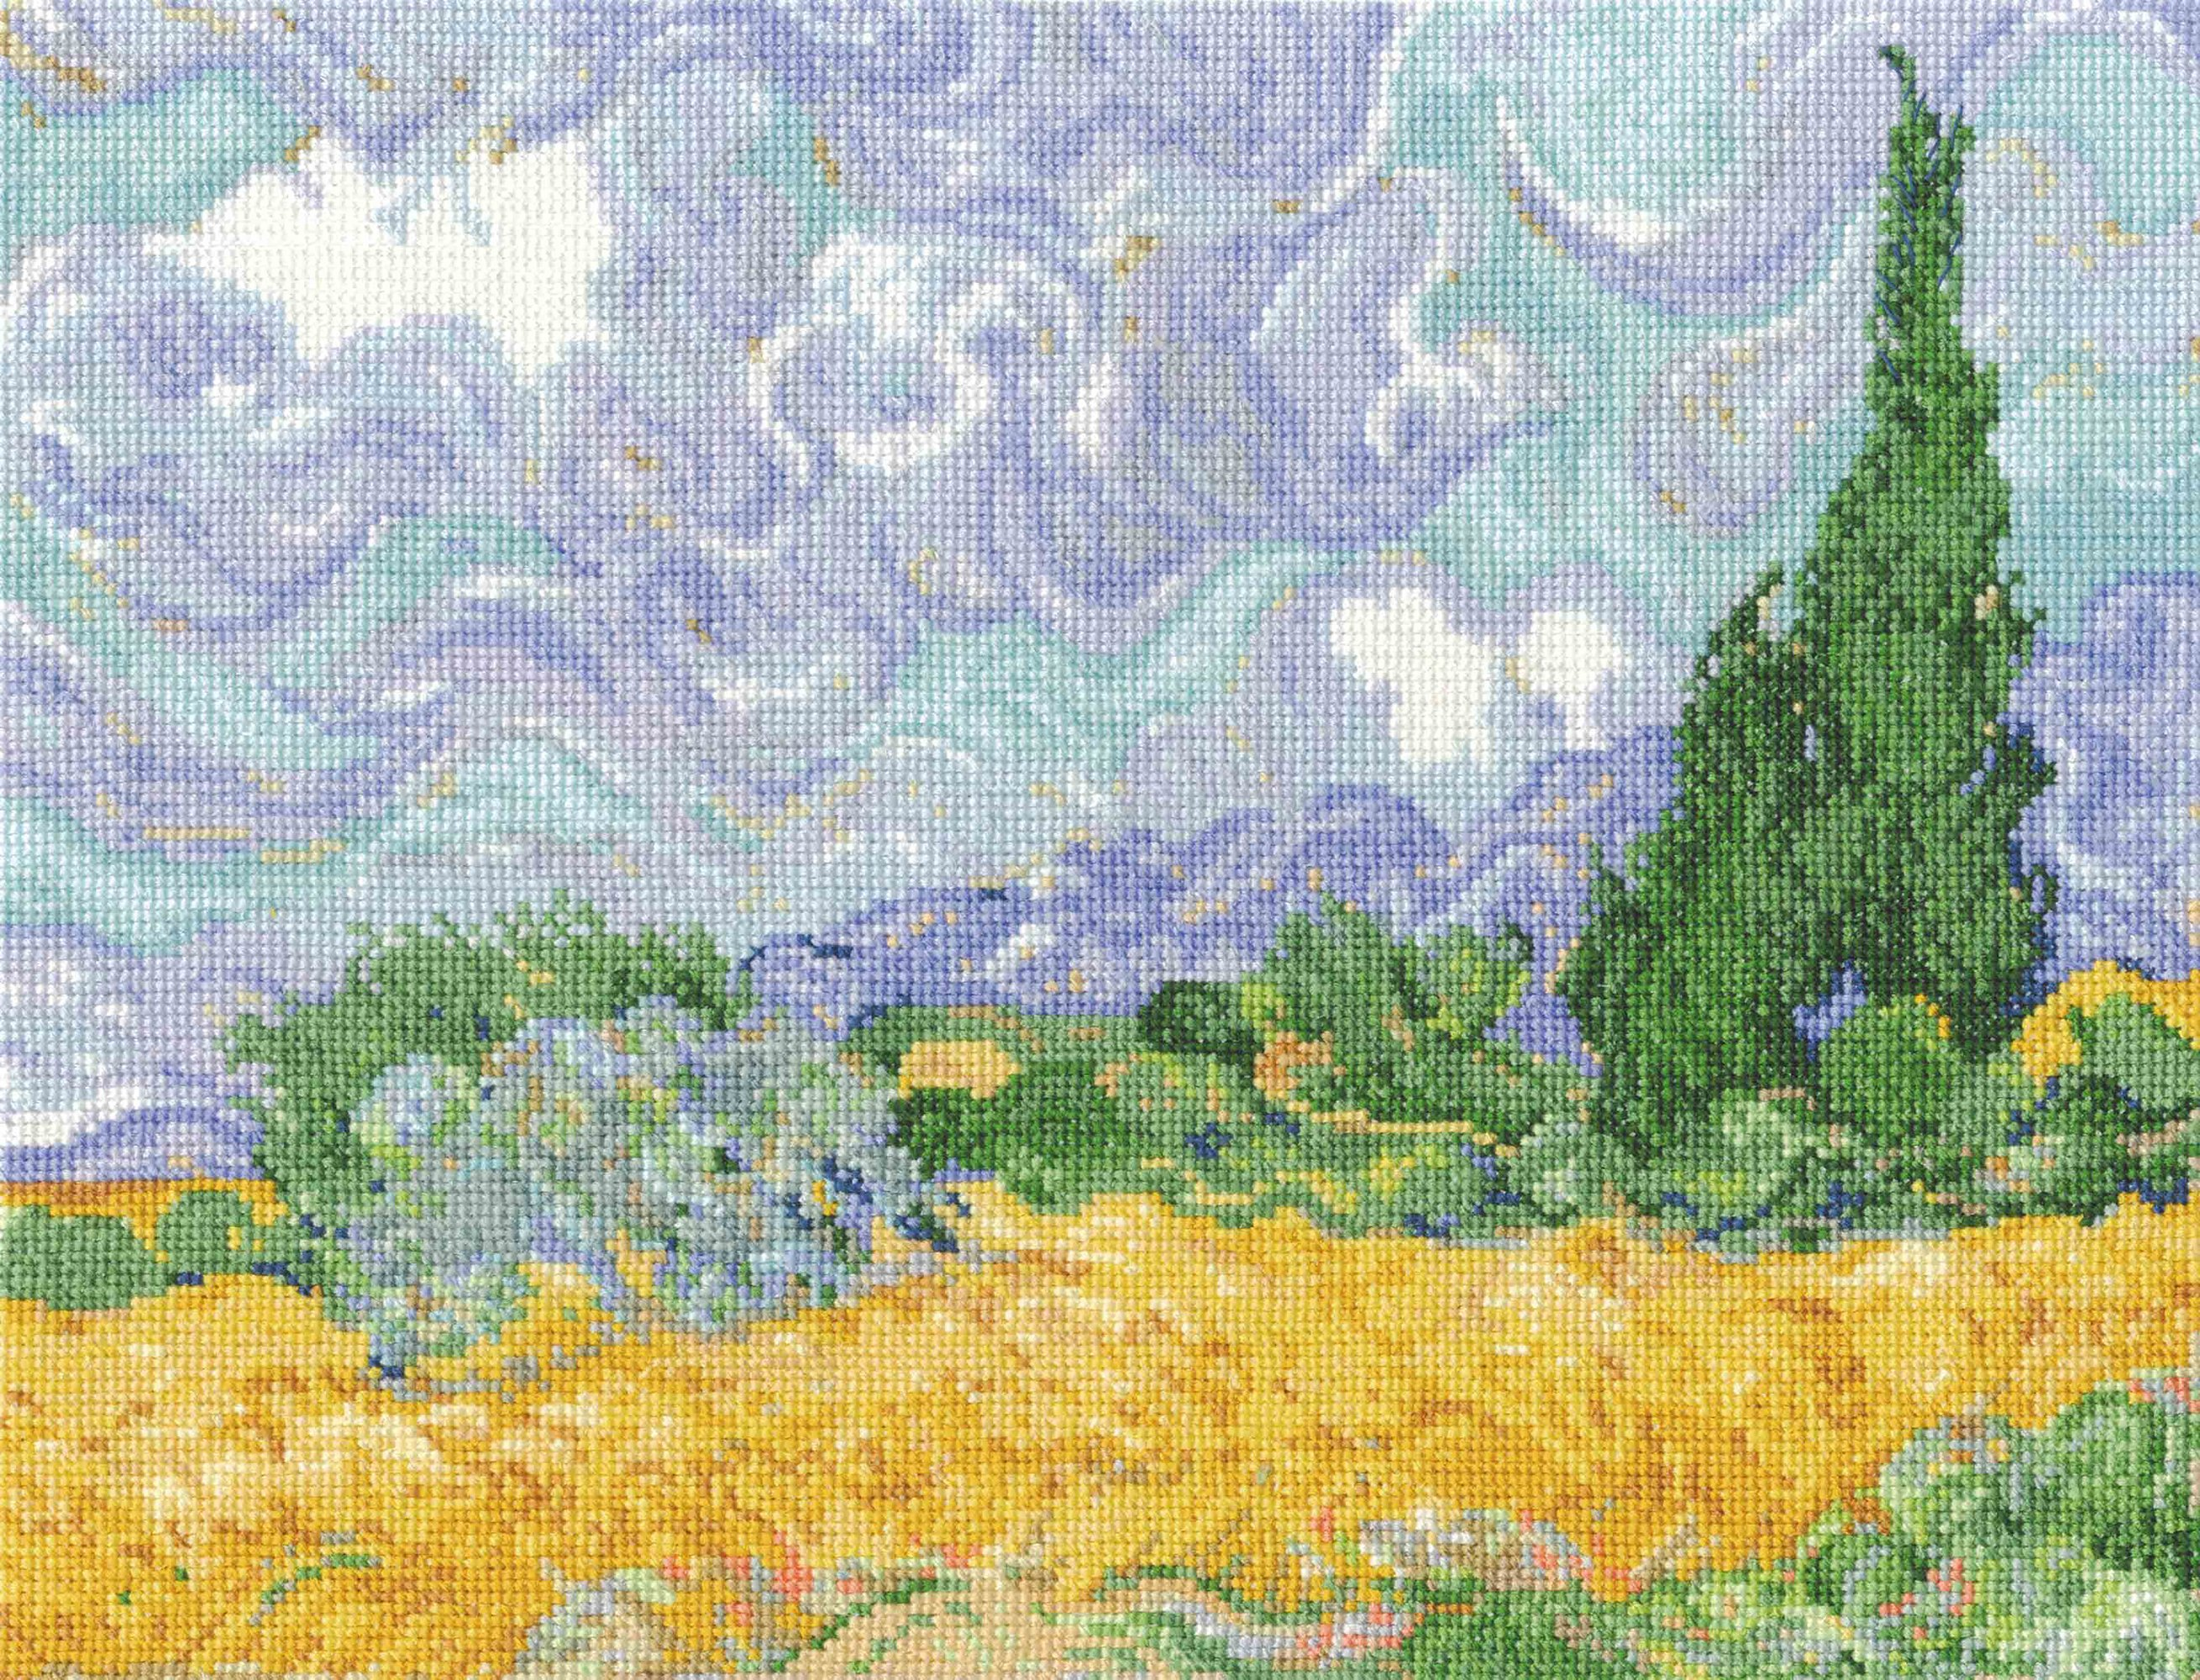 national-gallery-van-gogh-wheatfield-cross-stitch-kit